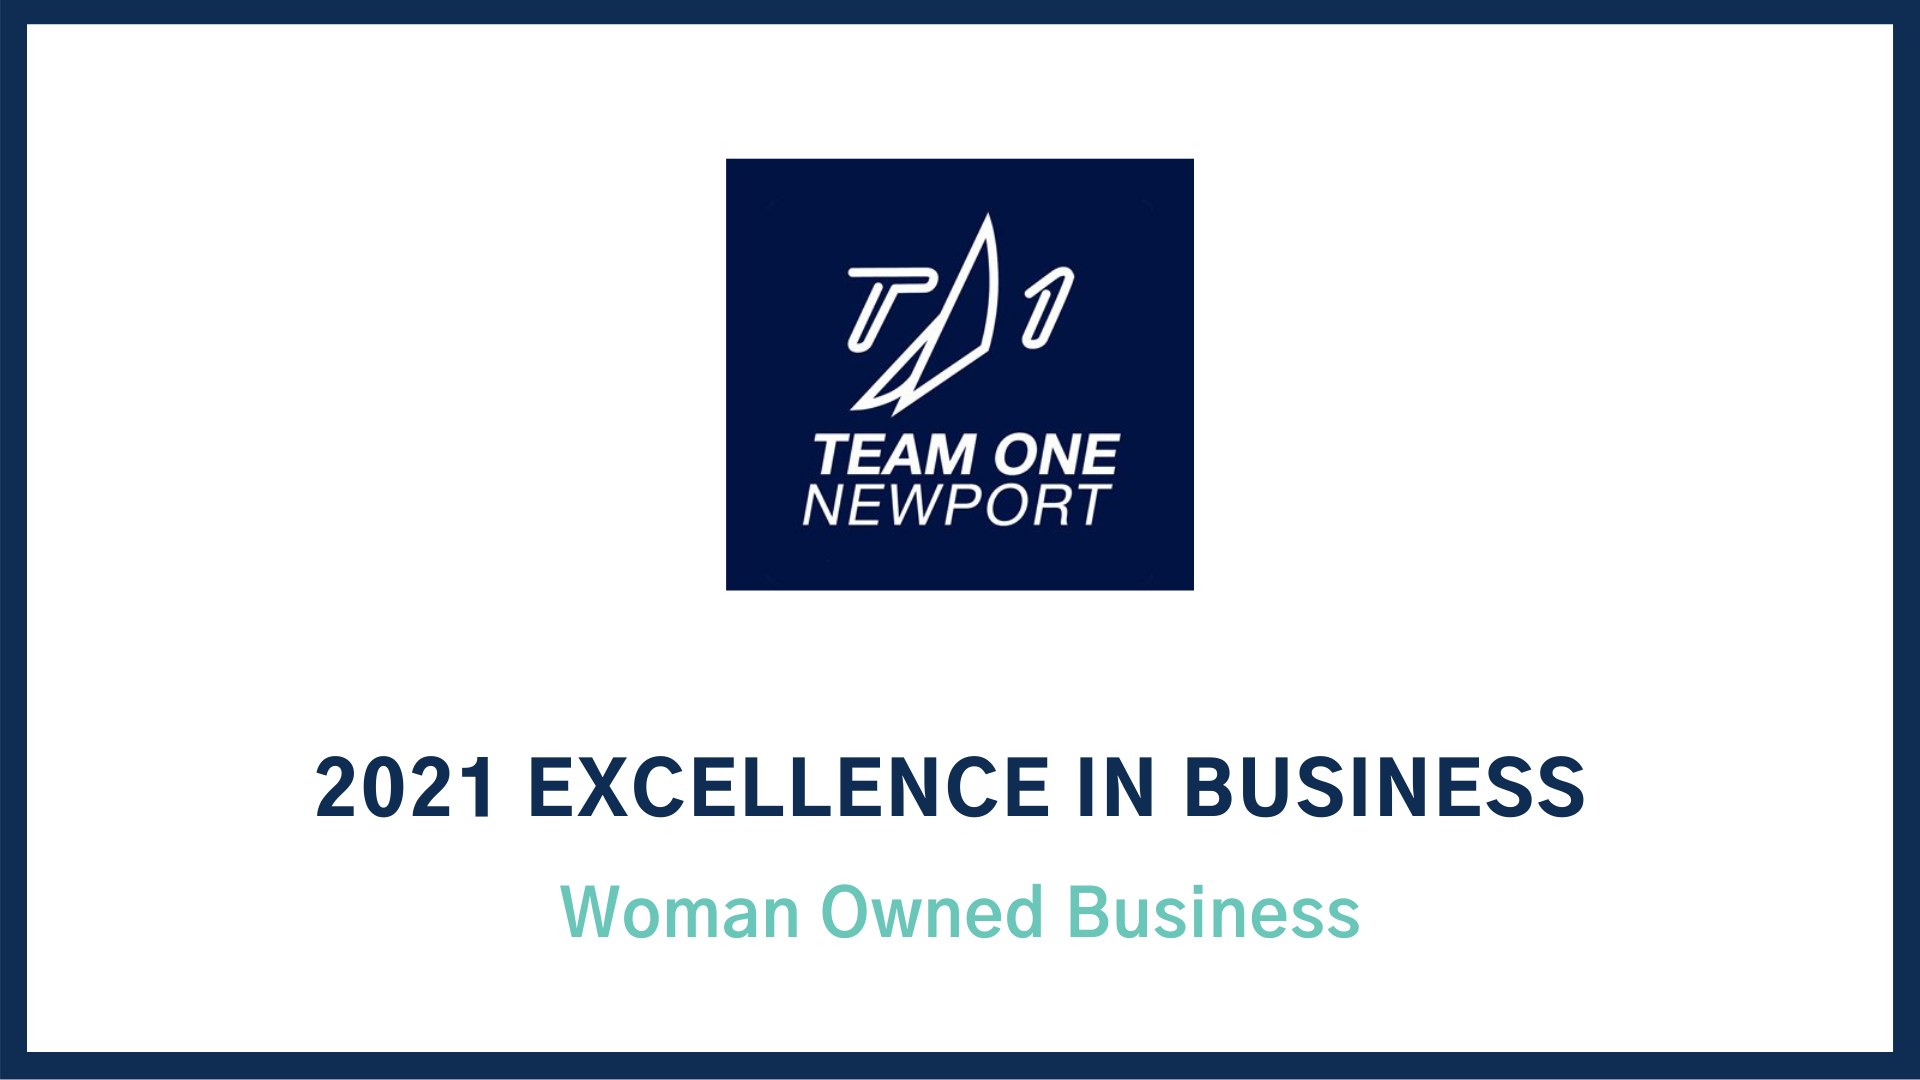 2021 Excellence in Business Award: Woman Owned Business Team One Newport